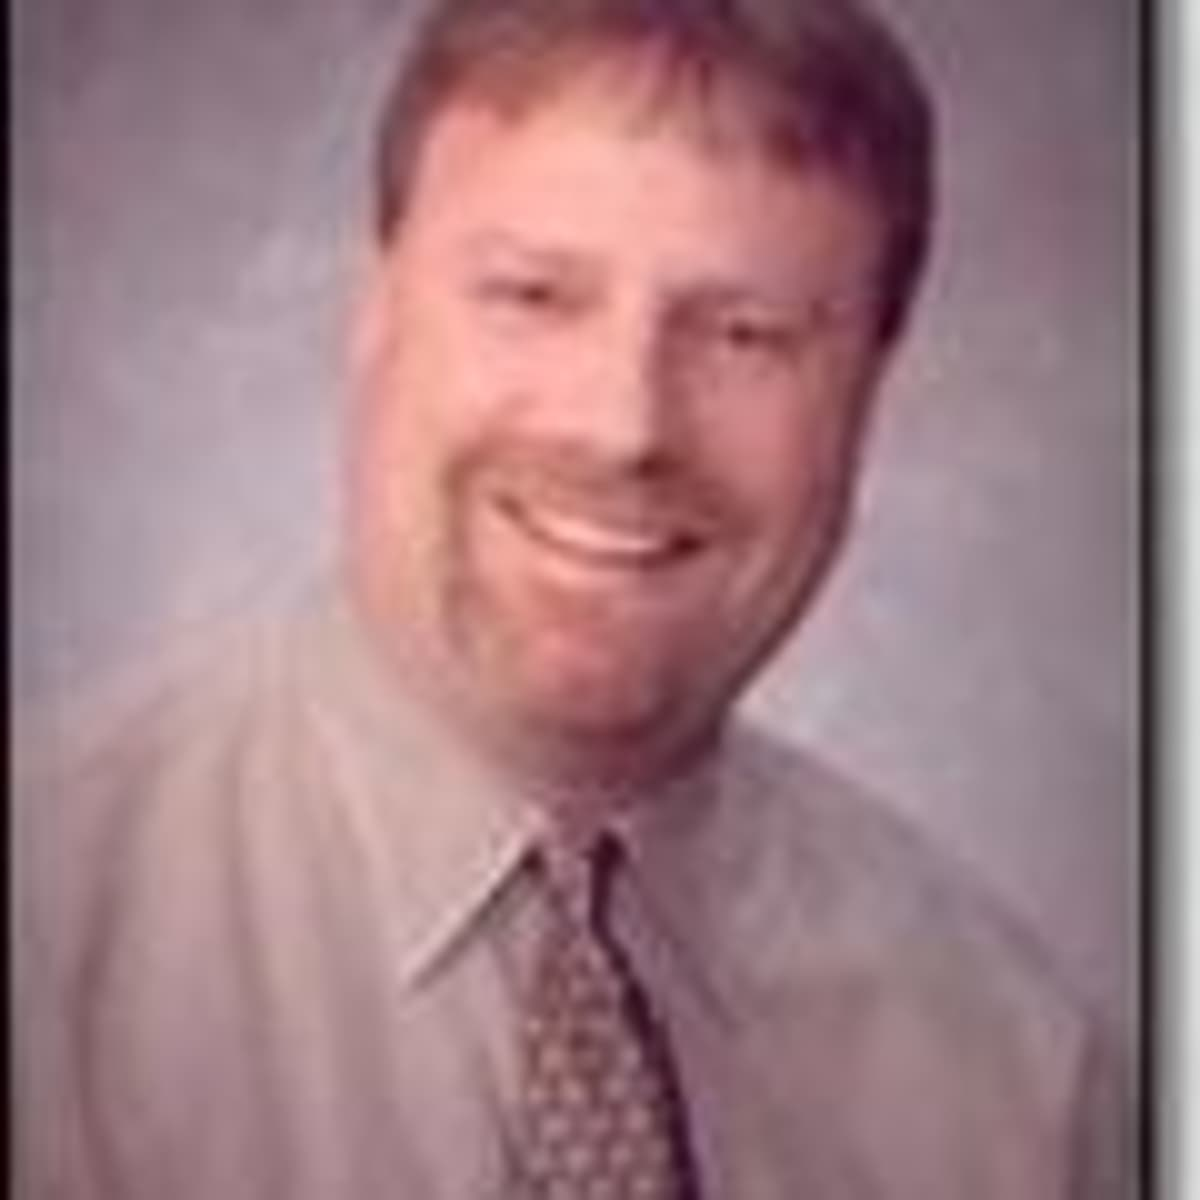 Dr mark newberry md holland mi family doctor for Newberry motors newberry michigan